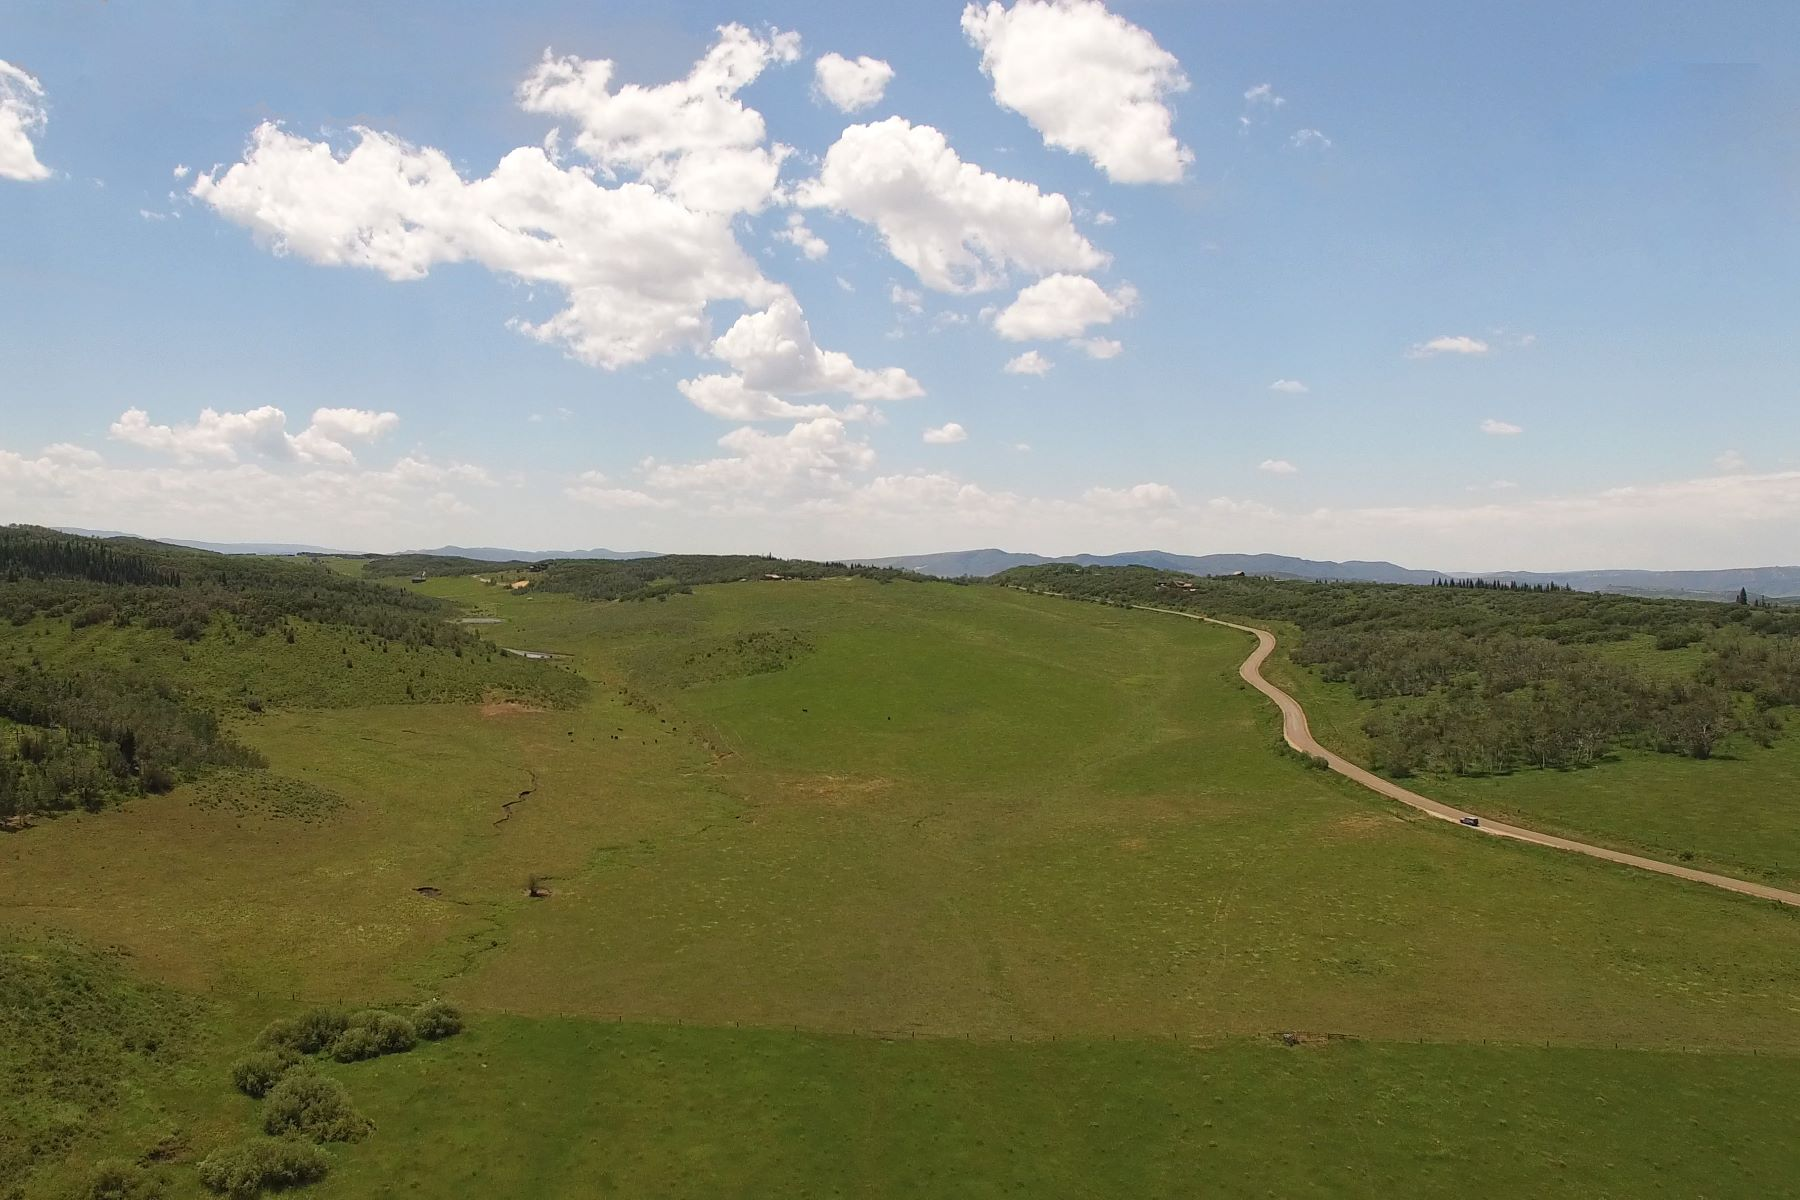 Land for Sale at 120 Acres on County Road 43 TBD RCR 43 Steamboat Springs, Colorado 80487 United States